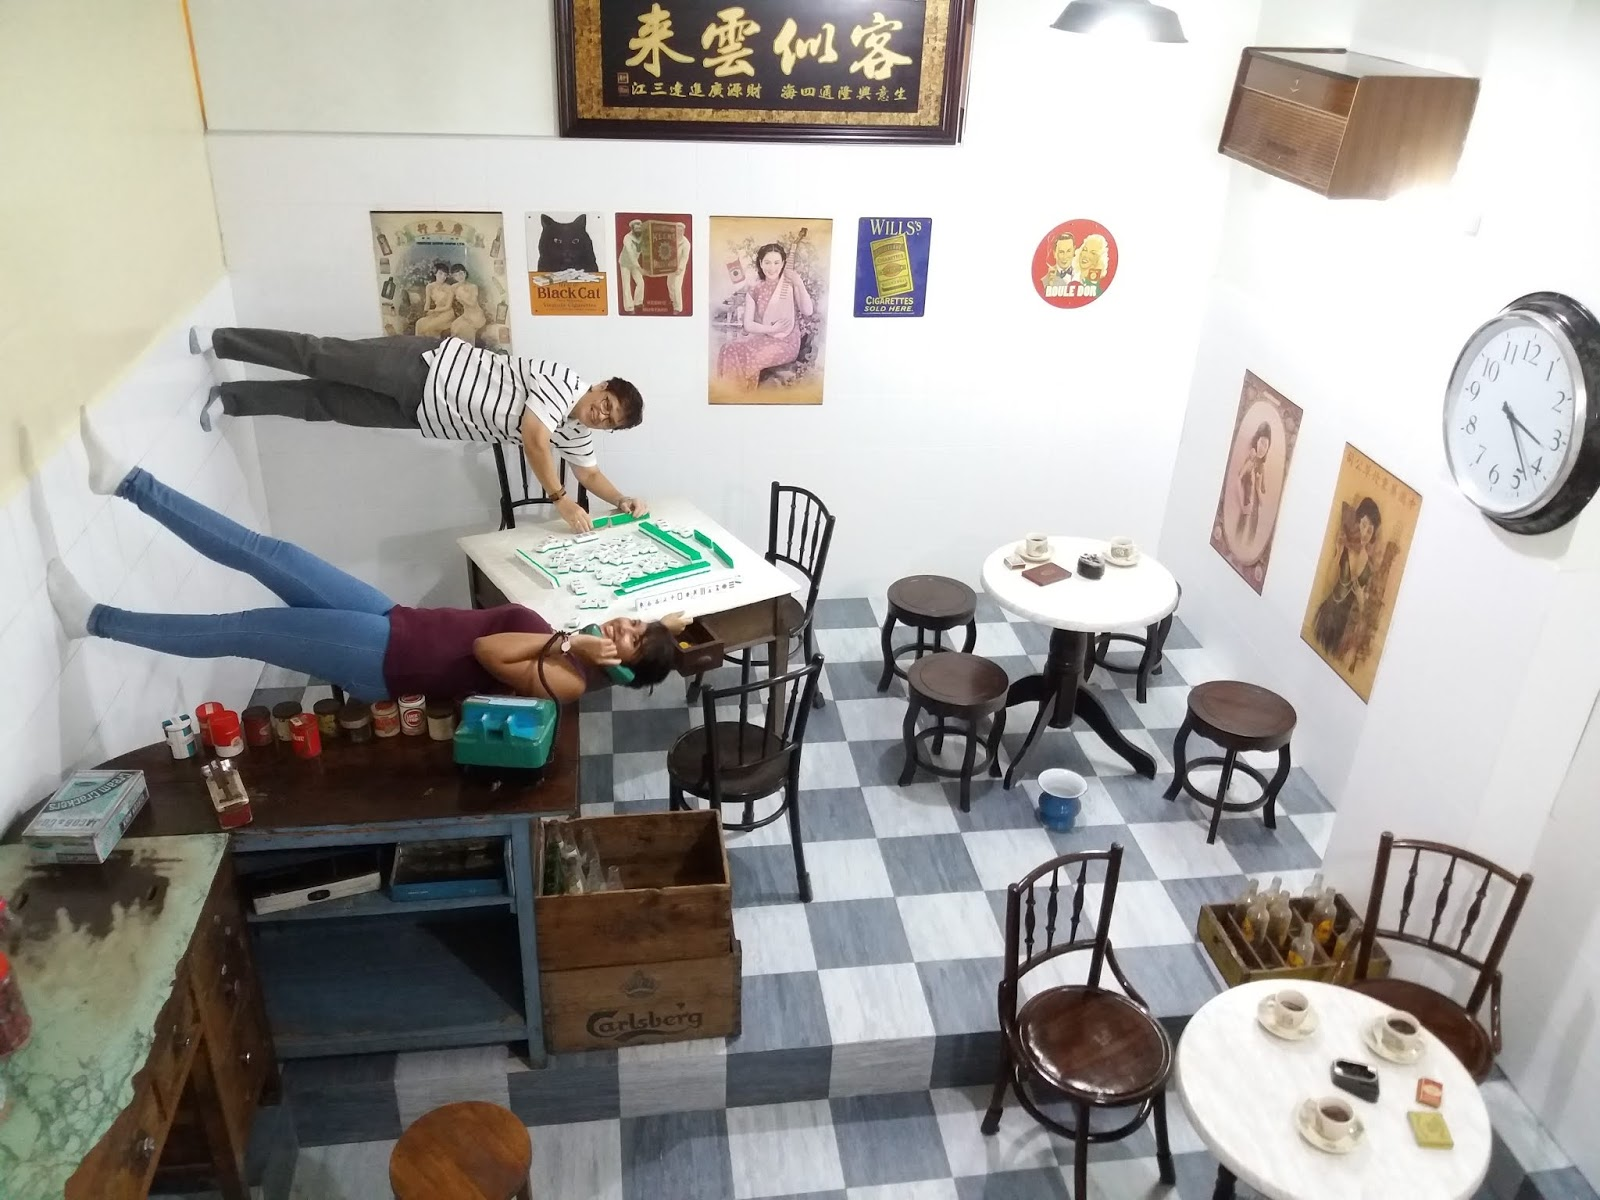 Visiting the Upside Down Museum in Penang | Ummi Goes Where?